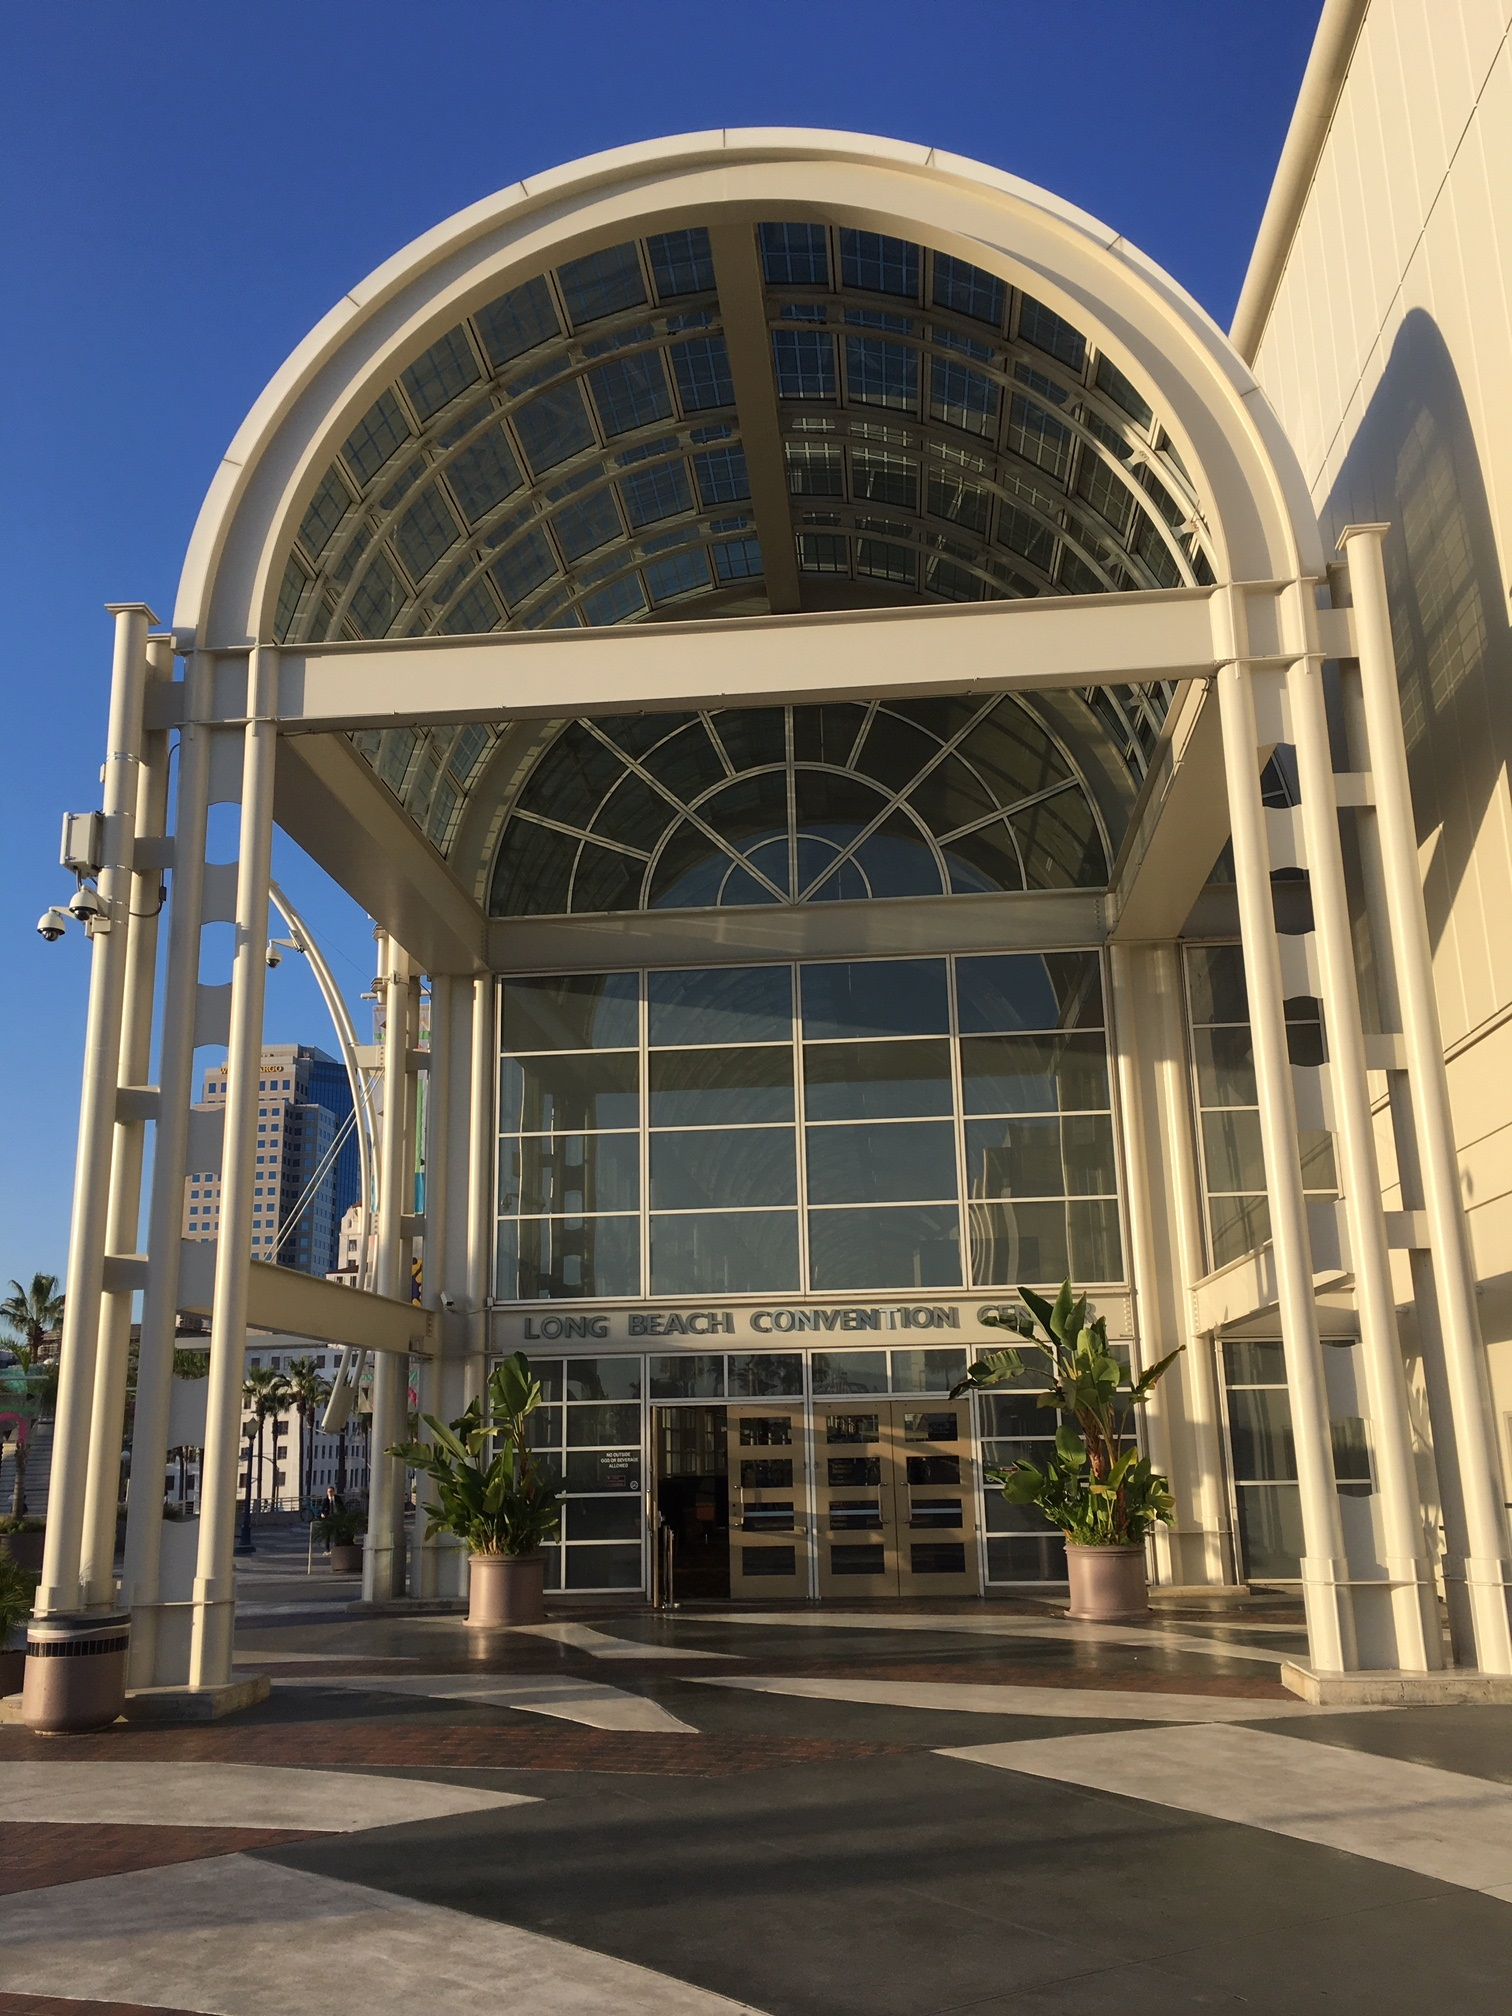 Long Beach Convention Center venue of the AVS 65th International Symposium and Exhibition